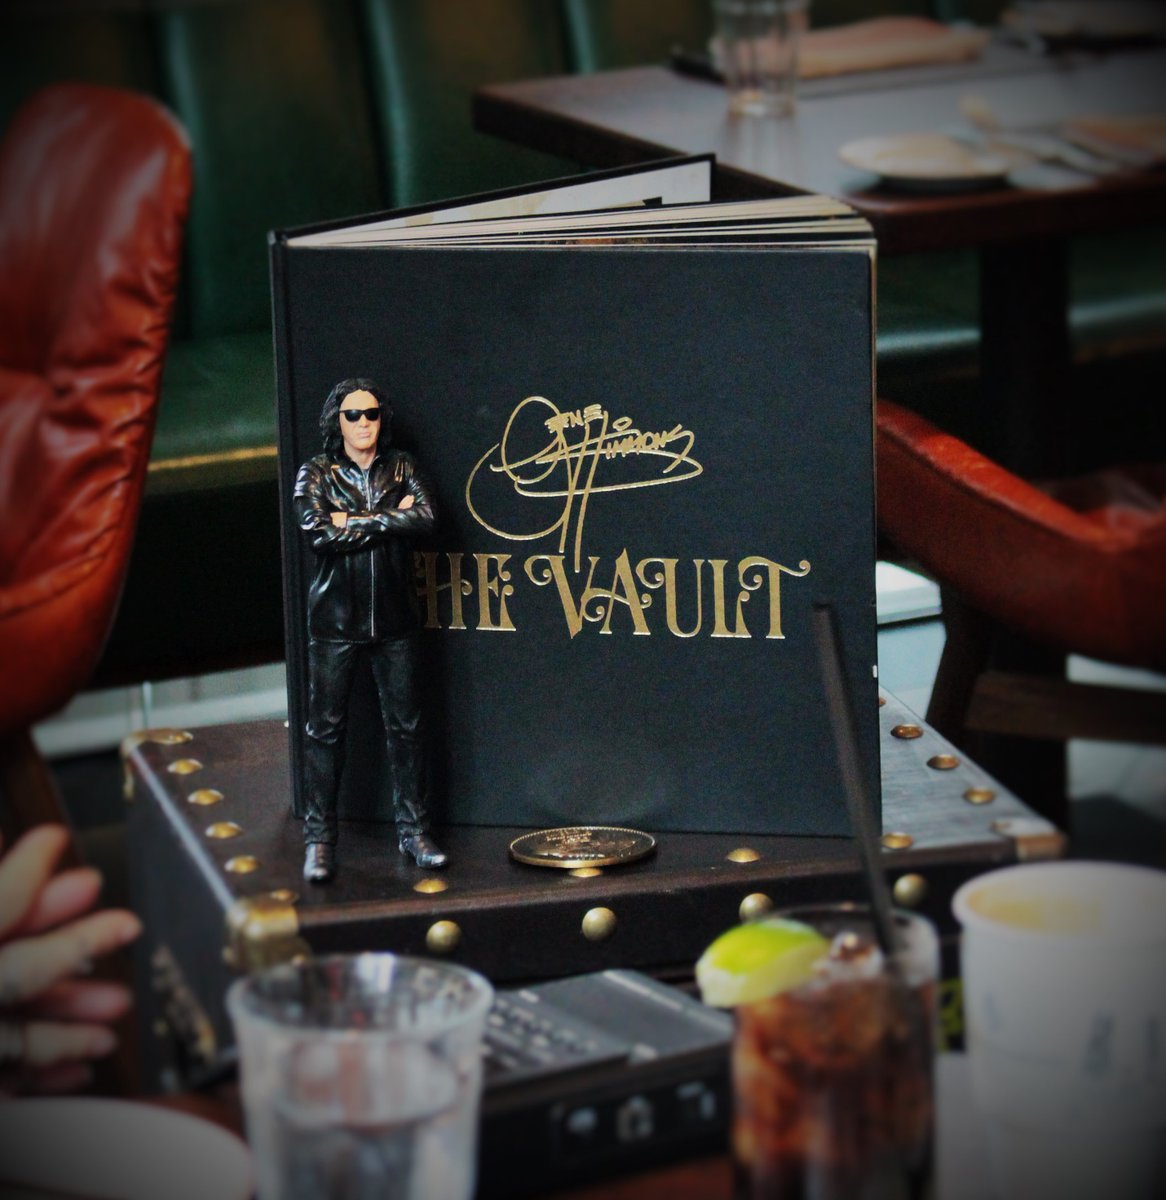 test Twitter Media - At 1:20pm ET, hear @WardandAl's interview with @genesimmons, sneak peek at #TheVaultExperience + more https://t.co/LDiWiEDT59 @KISSOnline https://t.co/8UcvizEmgI